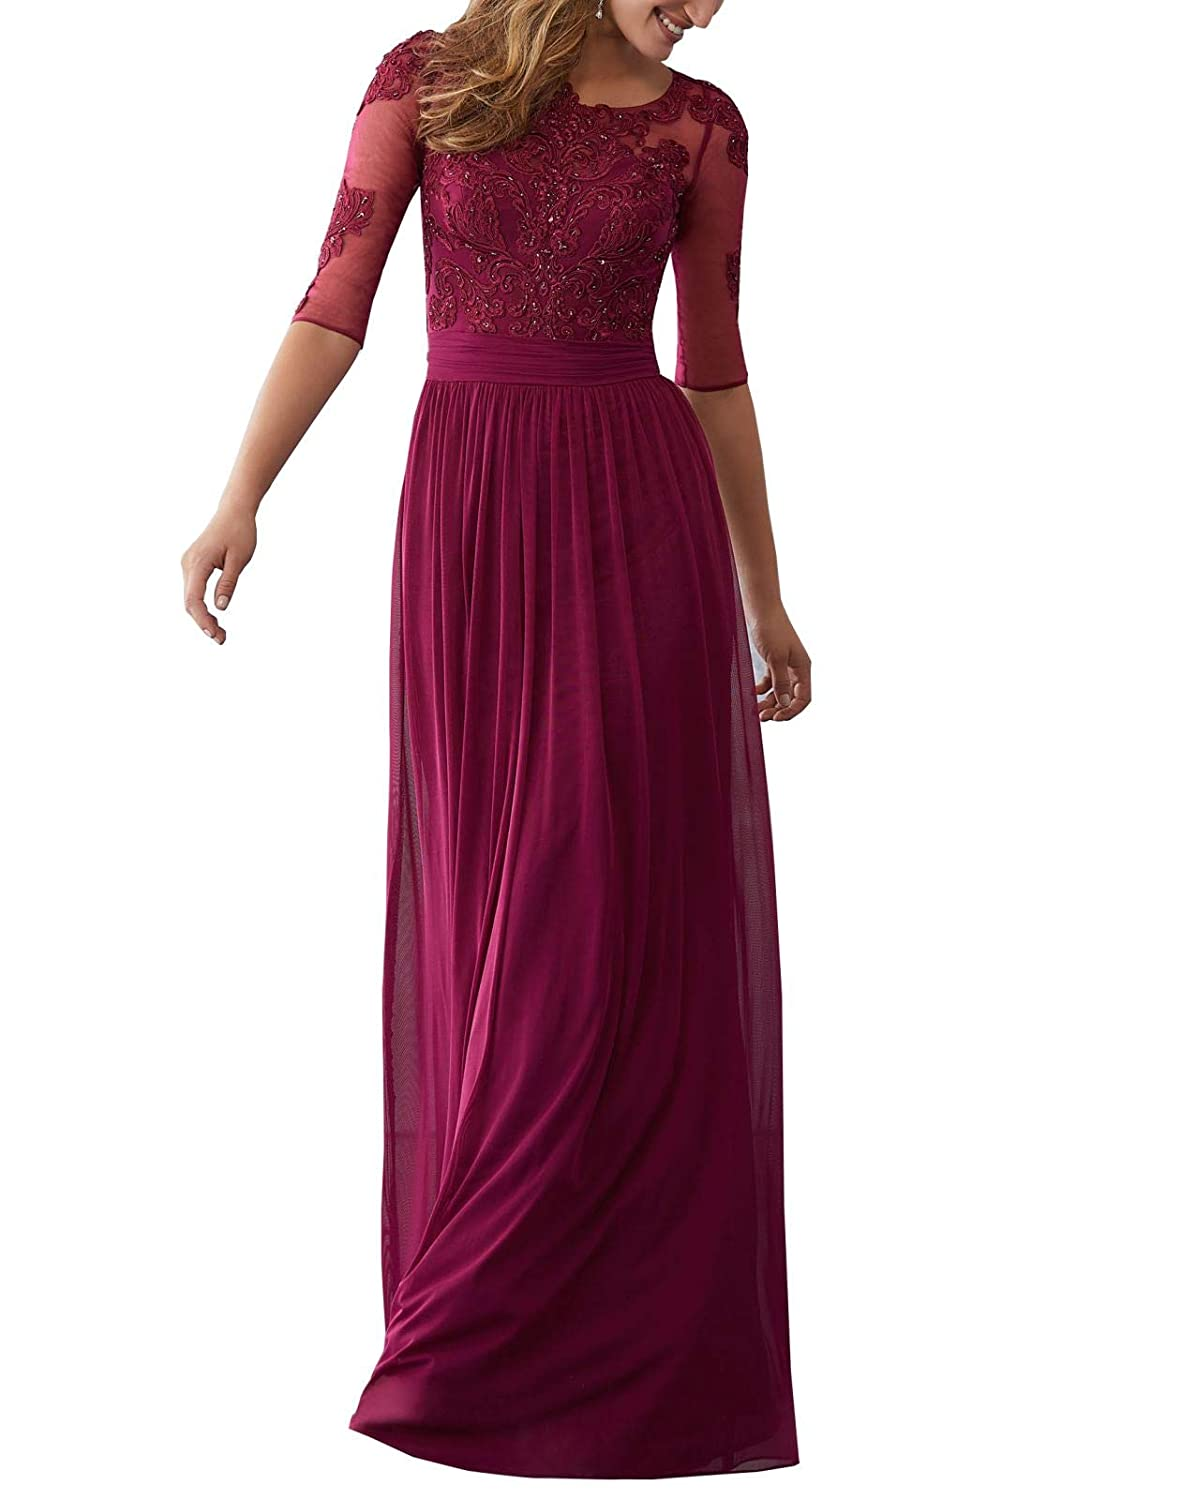 Dark Pink Wanshaqin Women's Aline Illusion Lace Appliques Evening Gown Formal Wedding Party Dress for Brides with Pleated Empire Waist